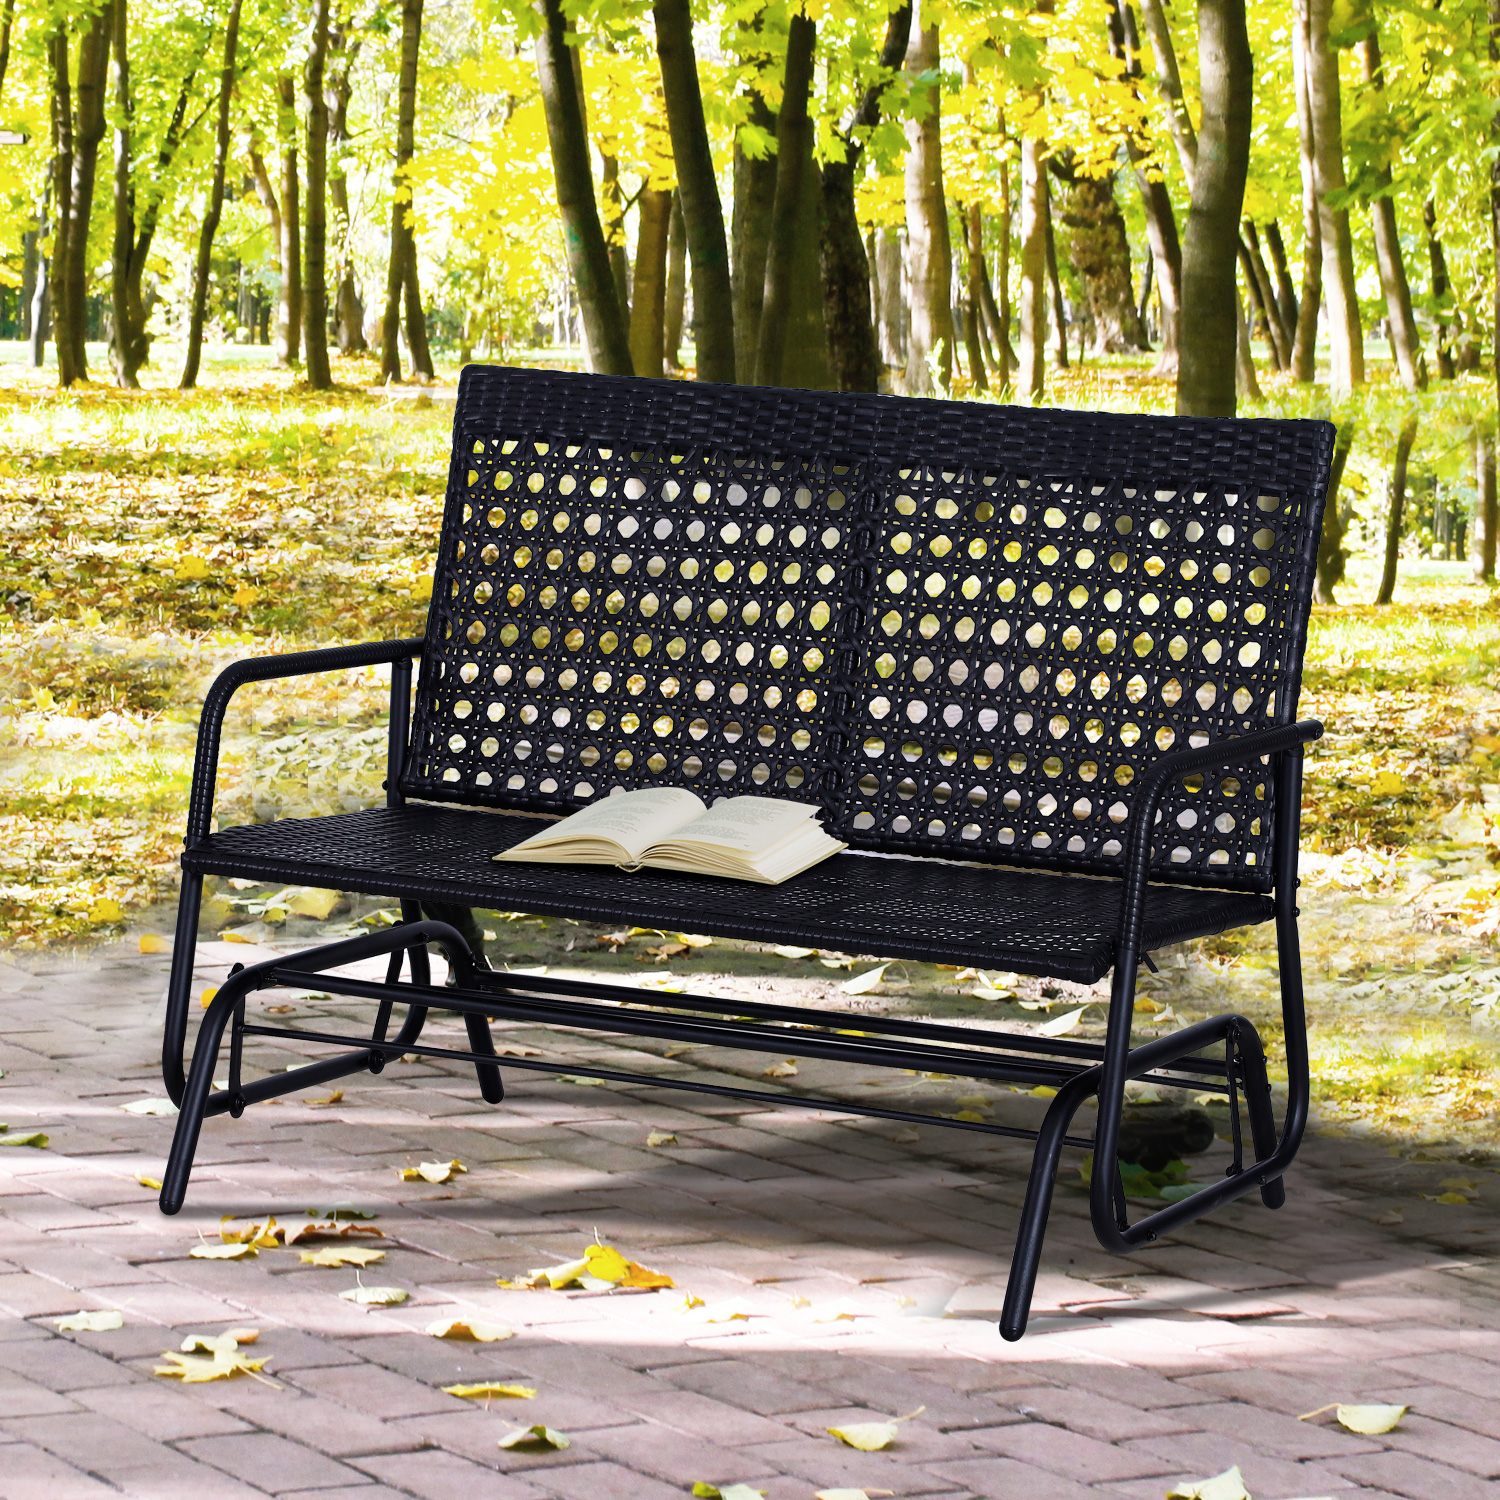 Outsunny-47x3x35inch-Garden-Bench-Wicker-Glider-Swing-Chair-Black thumbnail 1